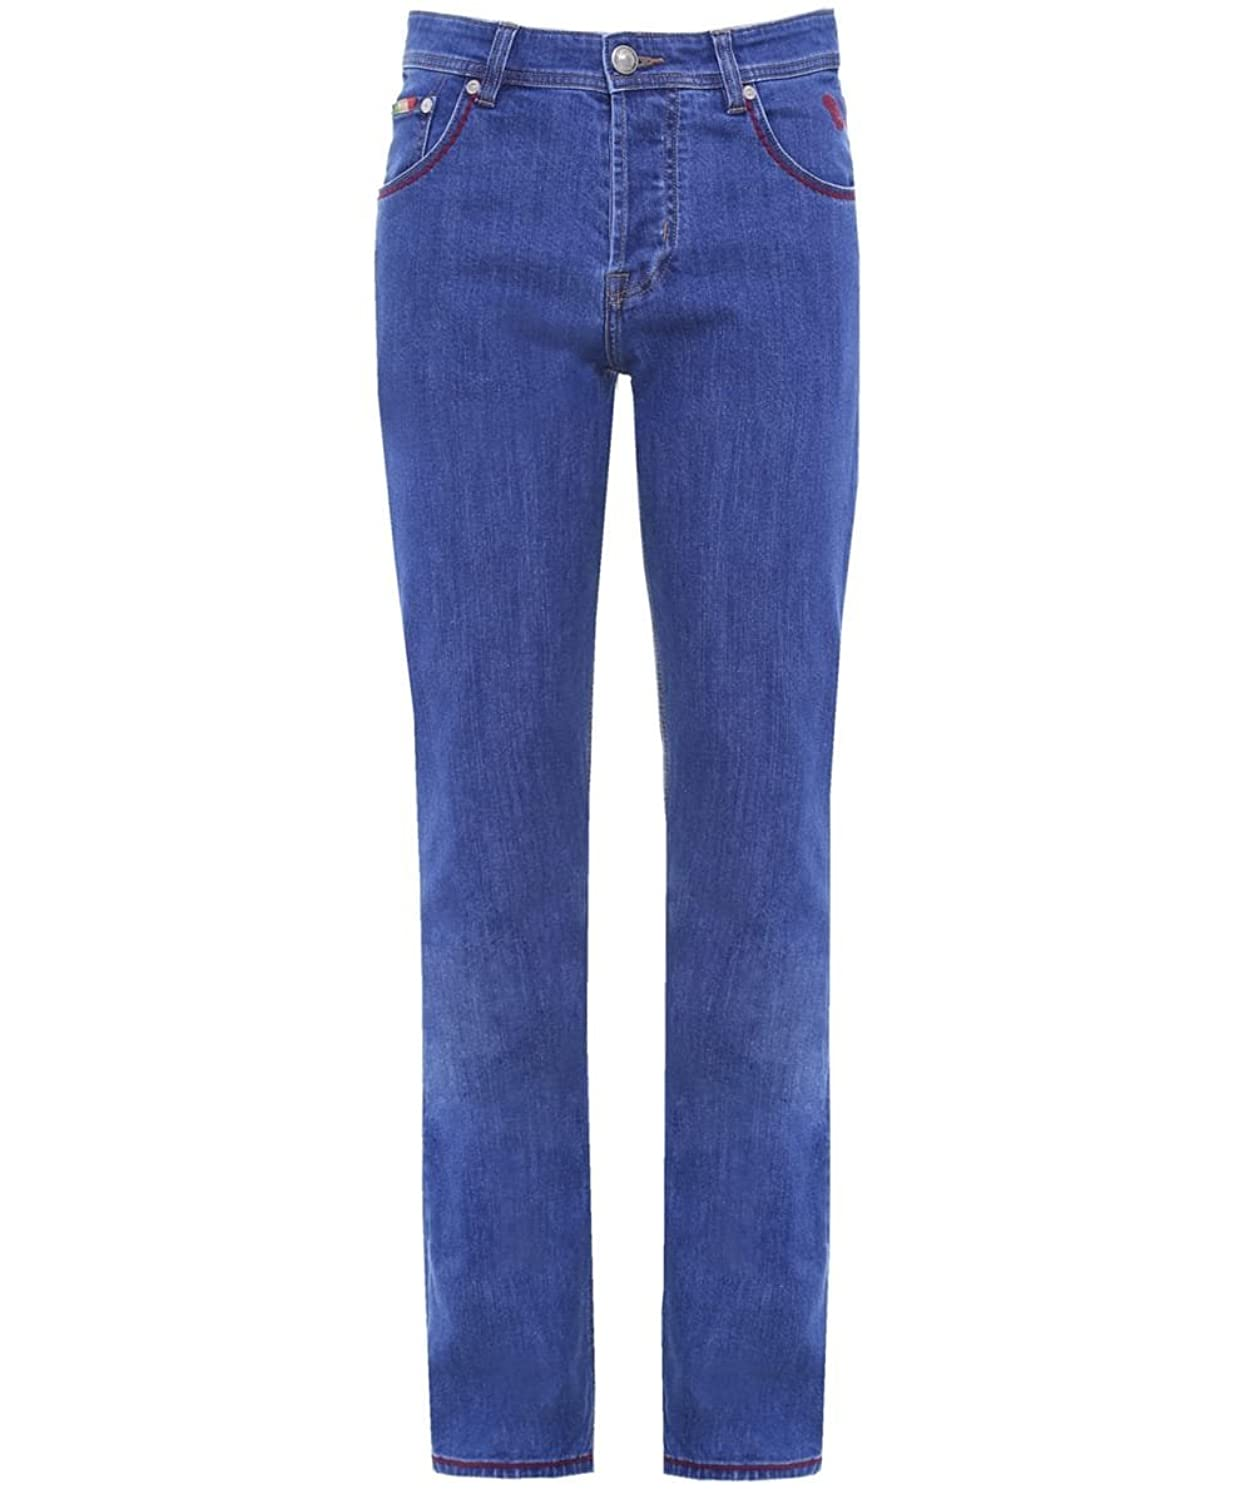 Mancini Slim Fit Tobert Jeans Denim